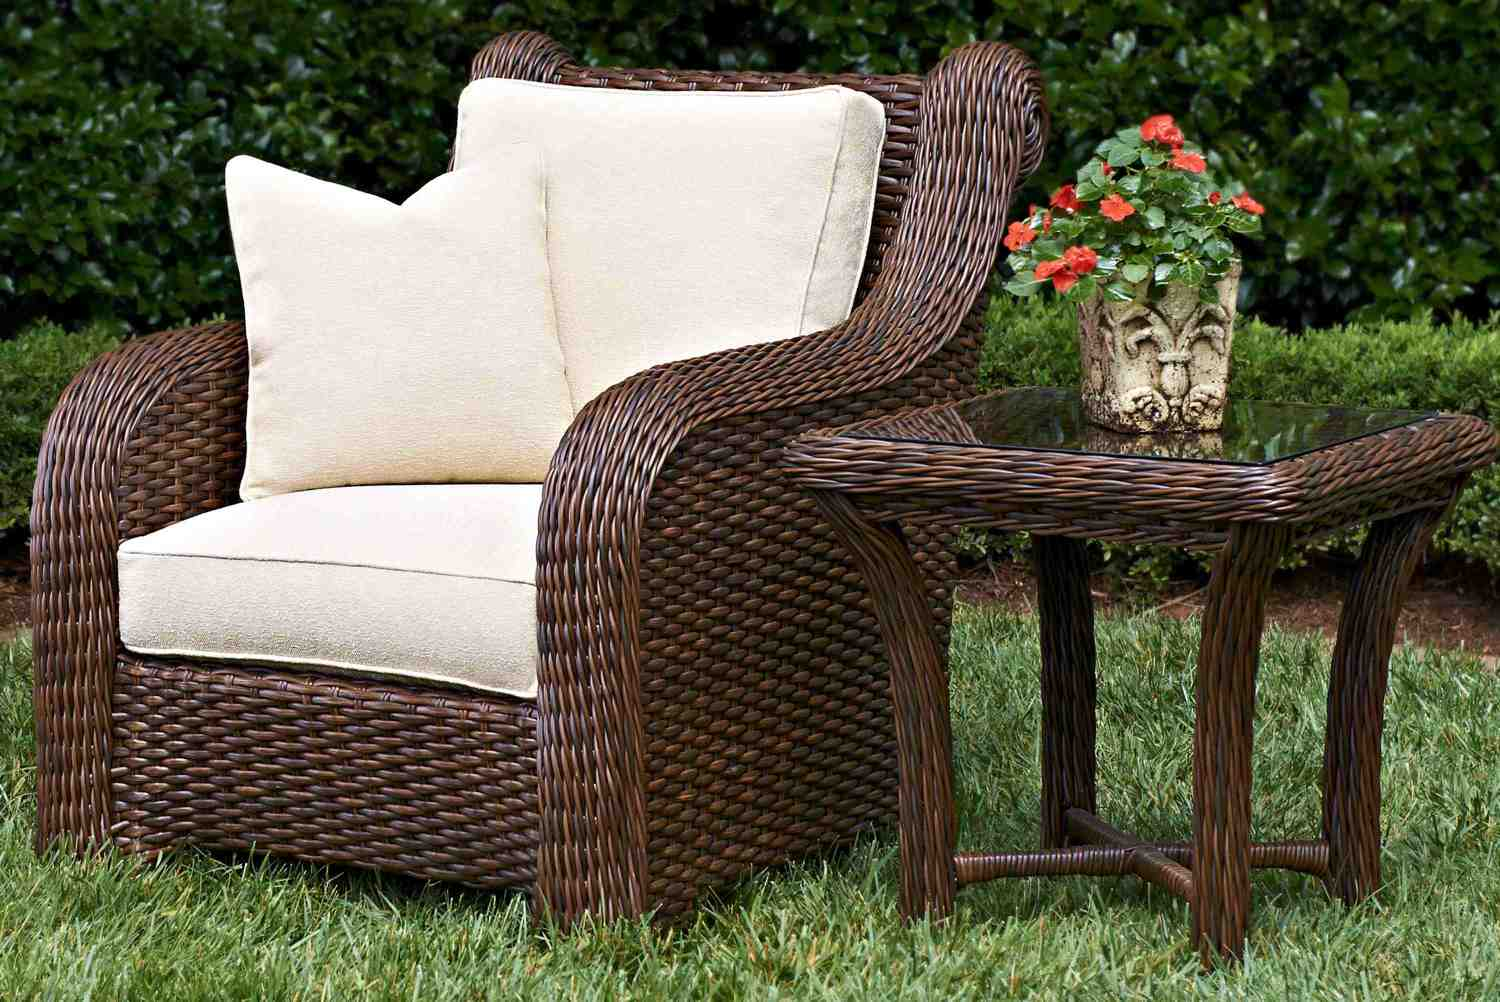 Laurel Home and hearth patio furniture